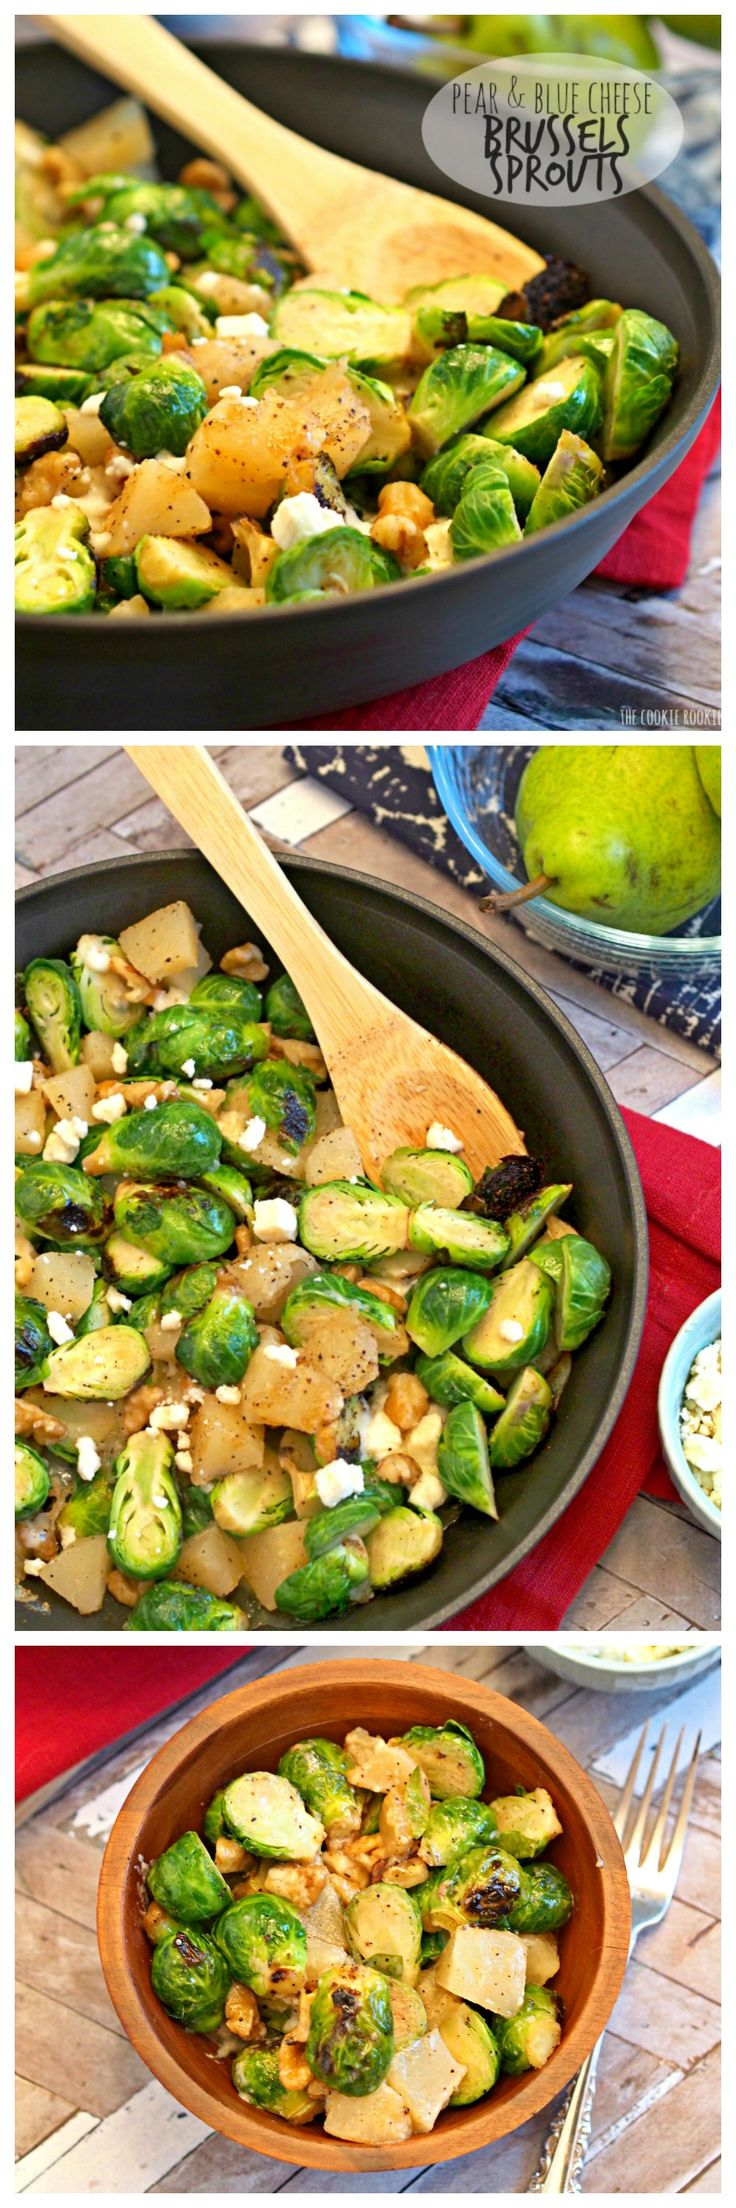 Pear and Blue Cheese Roasted Brussels Sprouts! Delicious and easy #Thanksgiving side dish! #healthy | http://www.thecookierookie.com/pear-blue-cheese-roasted-brussels-sprouts/ |